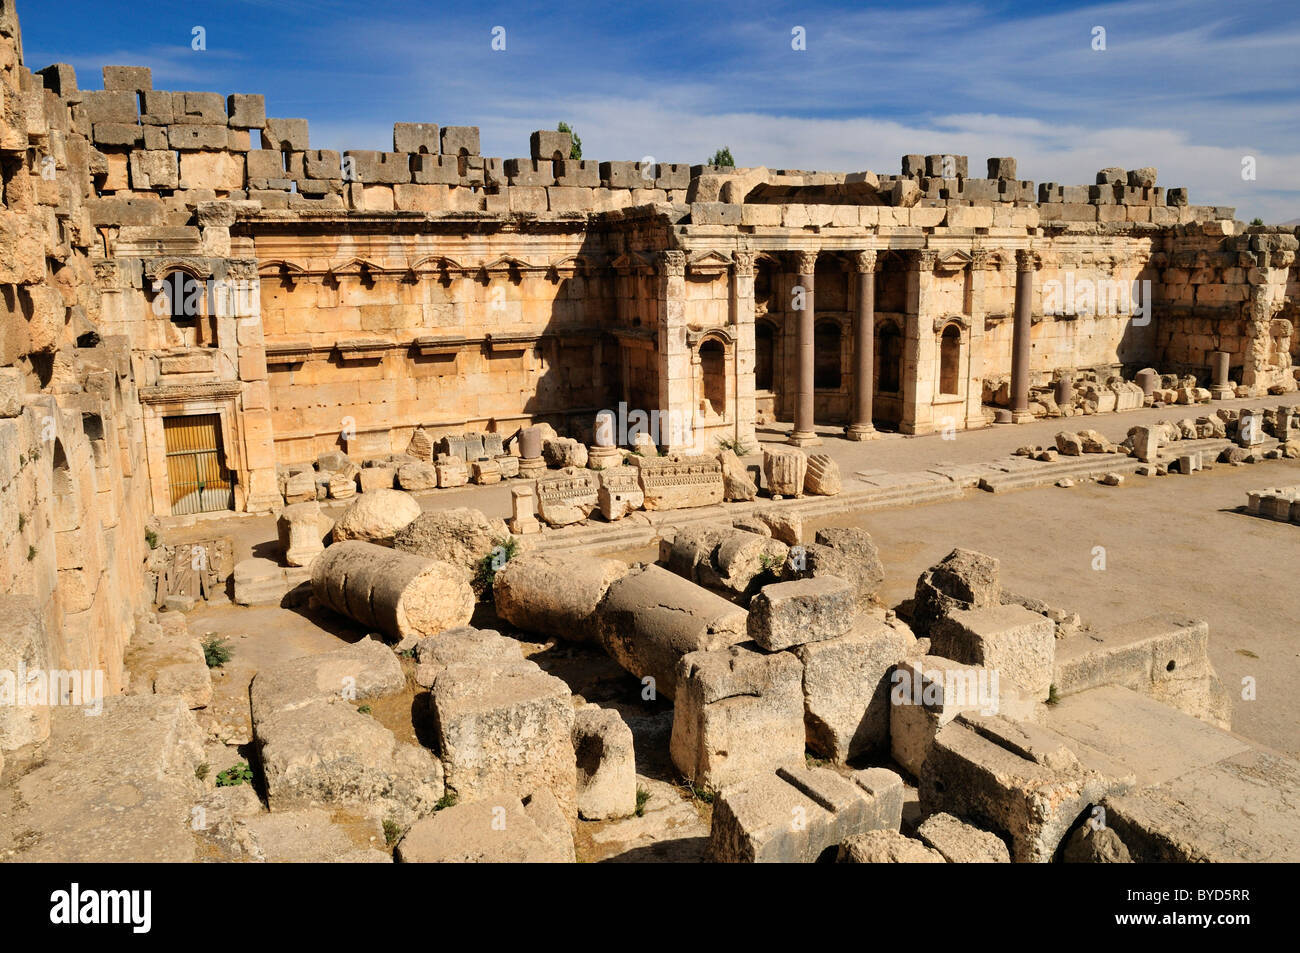 Antique ruins at the archeological site of Baalbek, Unesco World Heritage Site, Bekaa Valley, Lebanon, Middle East, - Stock Image